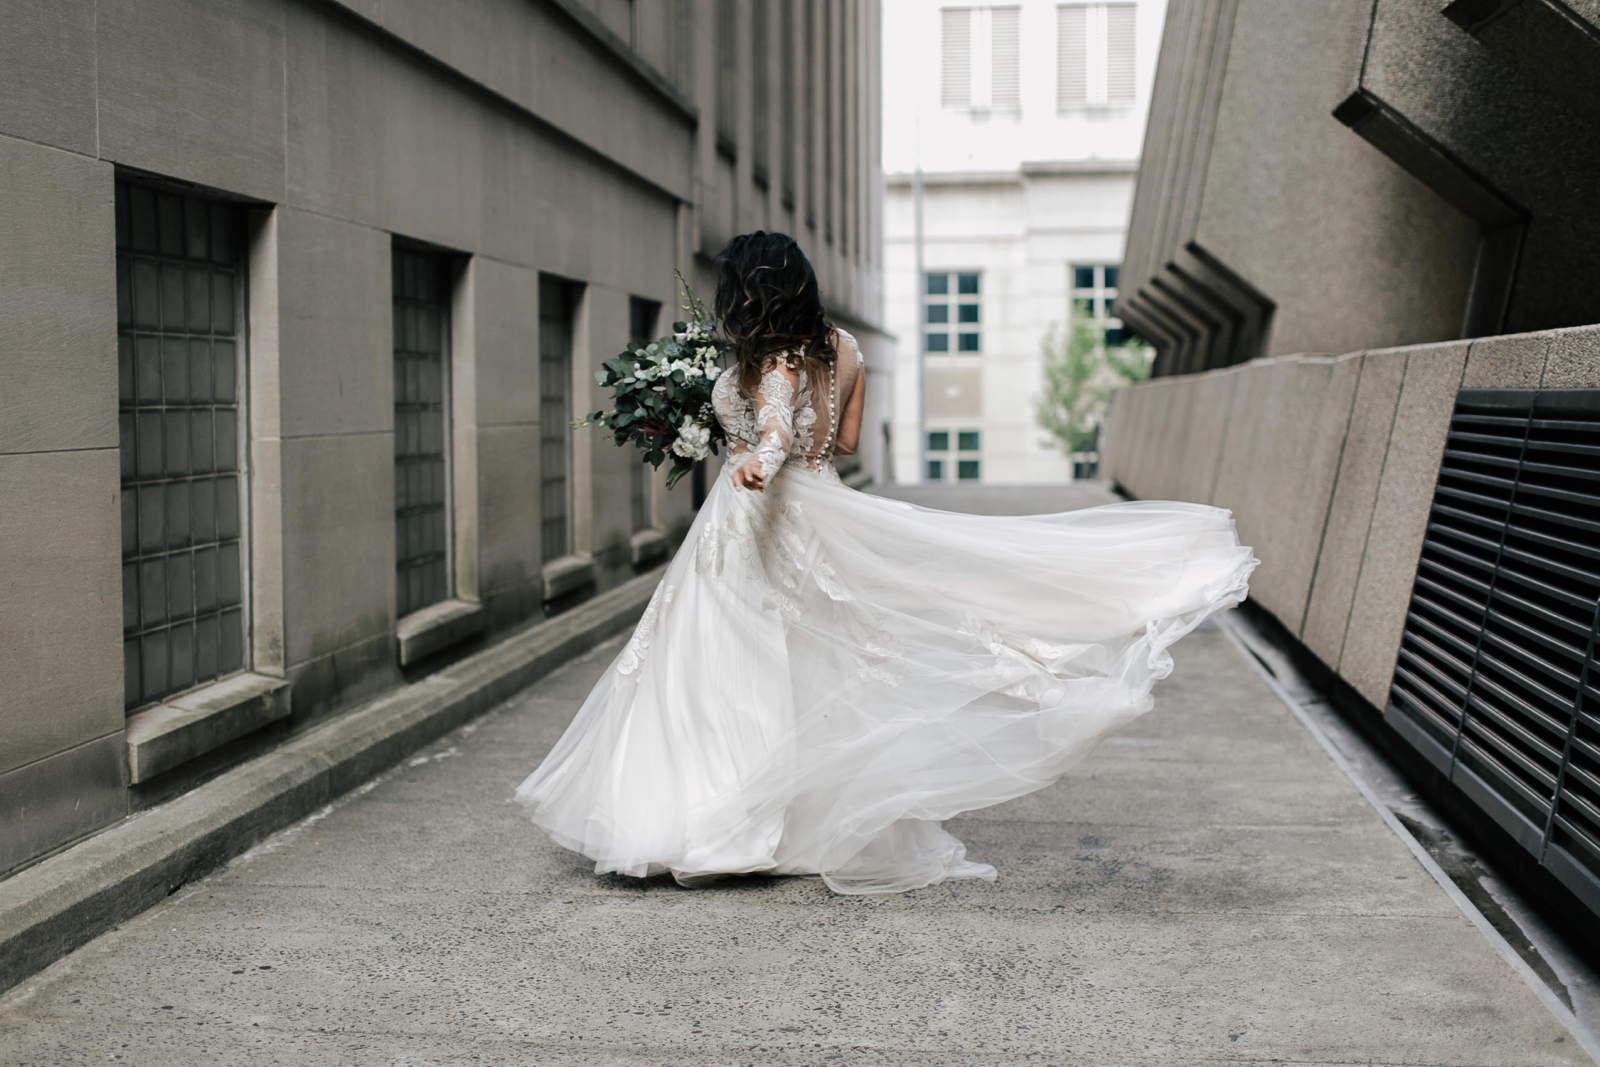 Bridal-Raleigh-Downtown-Styled-Shoot-14.jpg